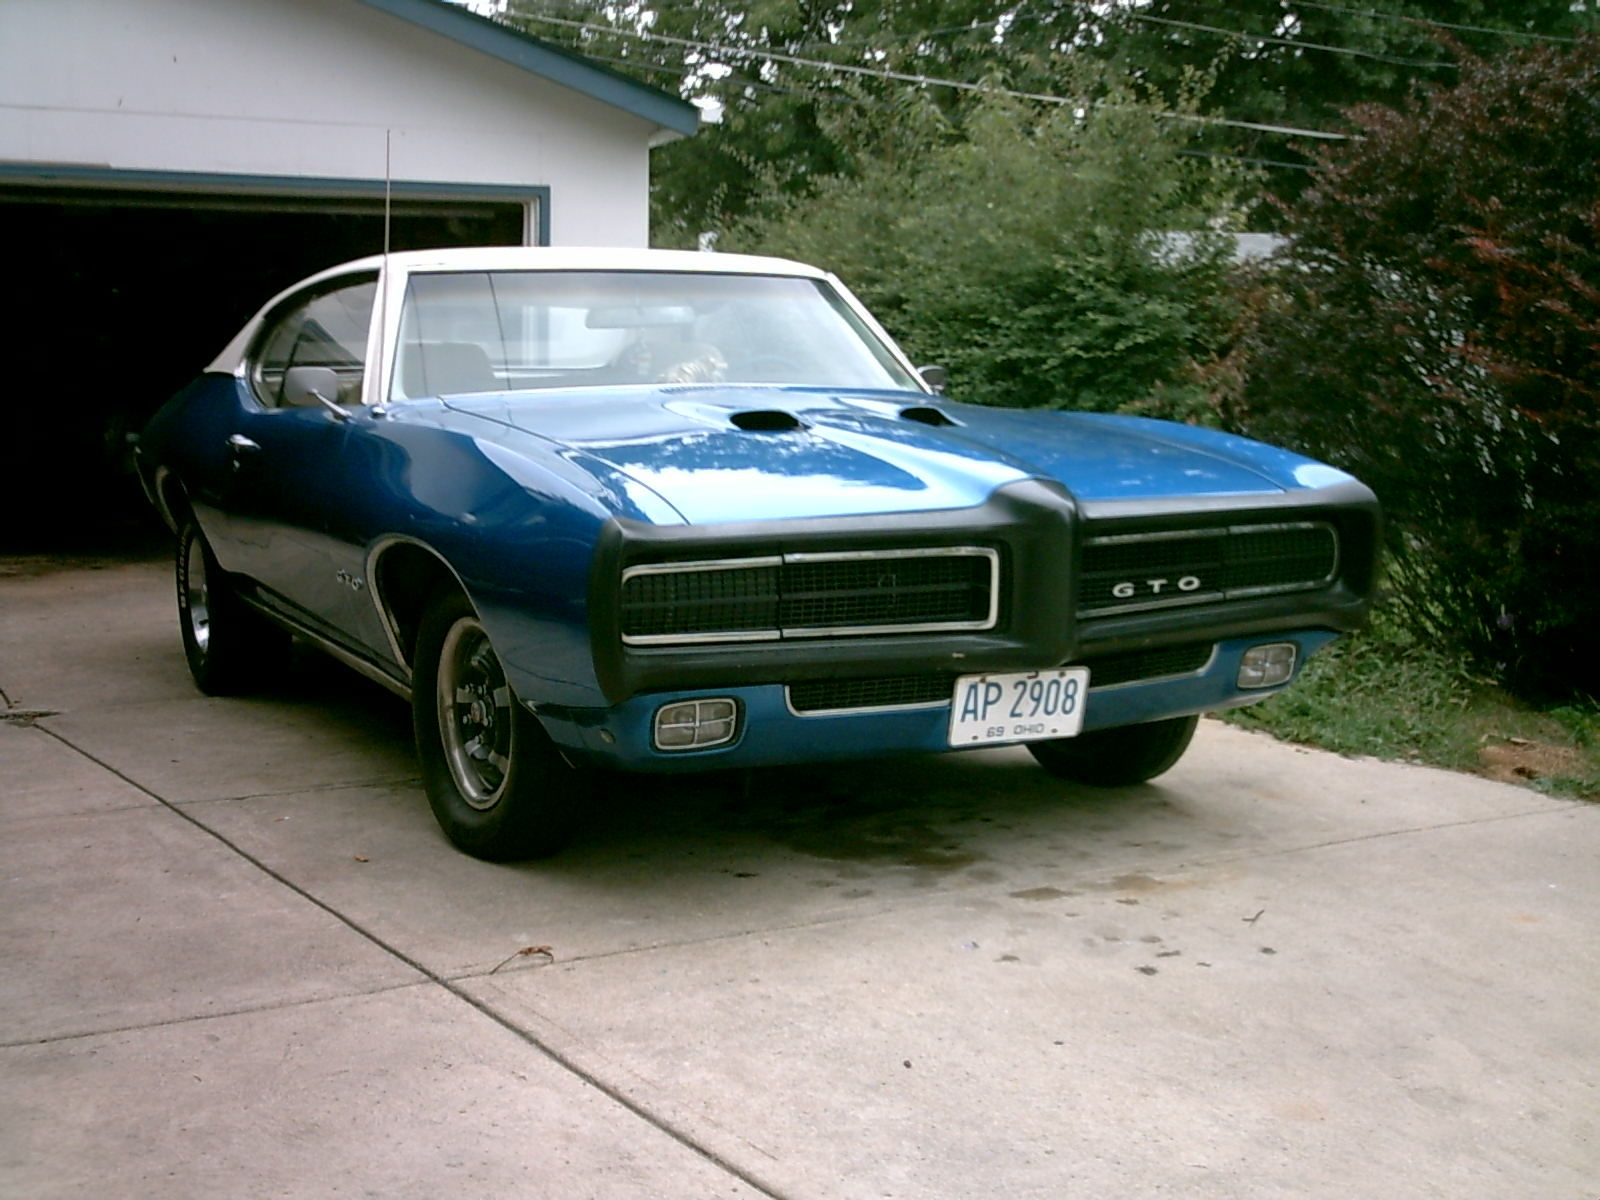 1967 Pontiac Bonneville Flickr Photo Sharing Gto 1960 Judge 1969 Picture Of Exterior